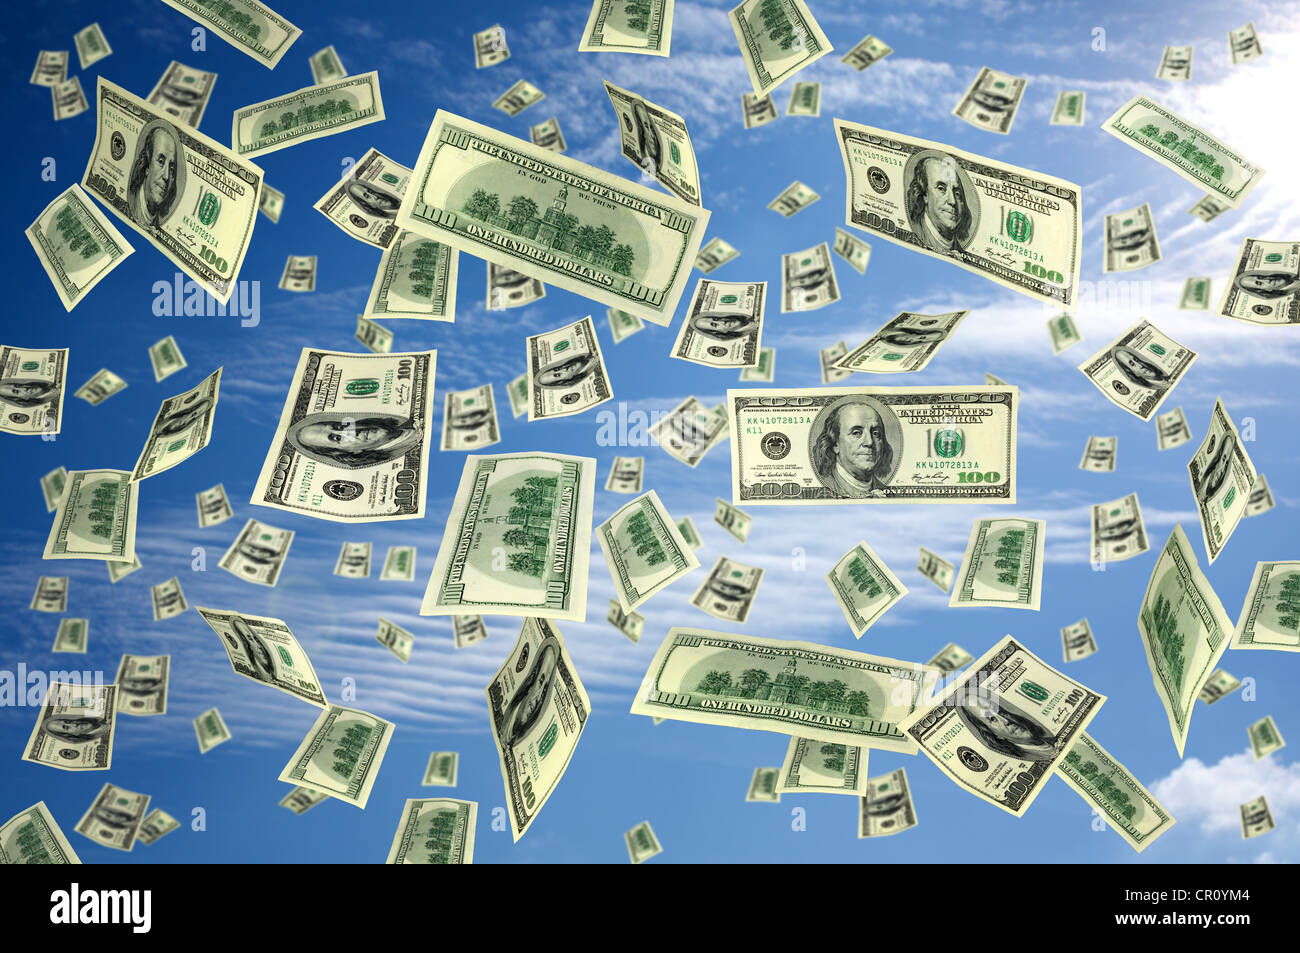 A lot of money 100 dollars bills flying on the sky concept - Stock Image